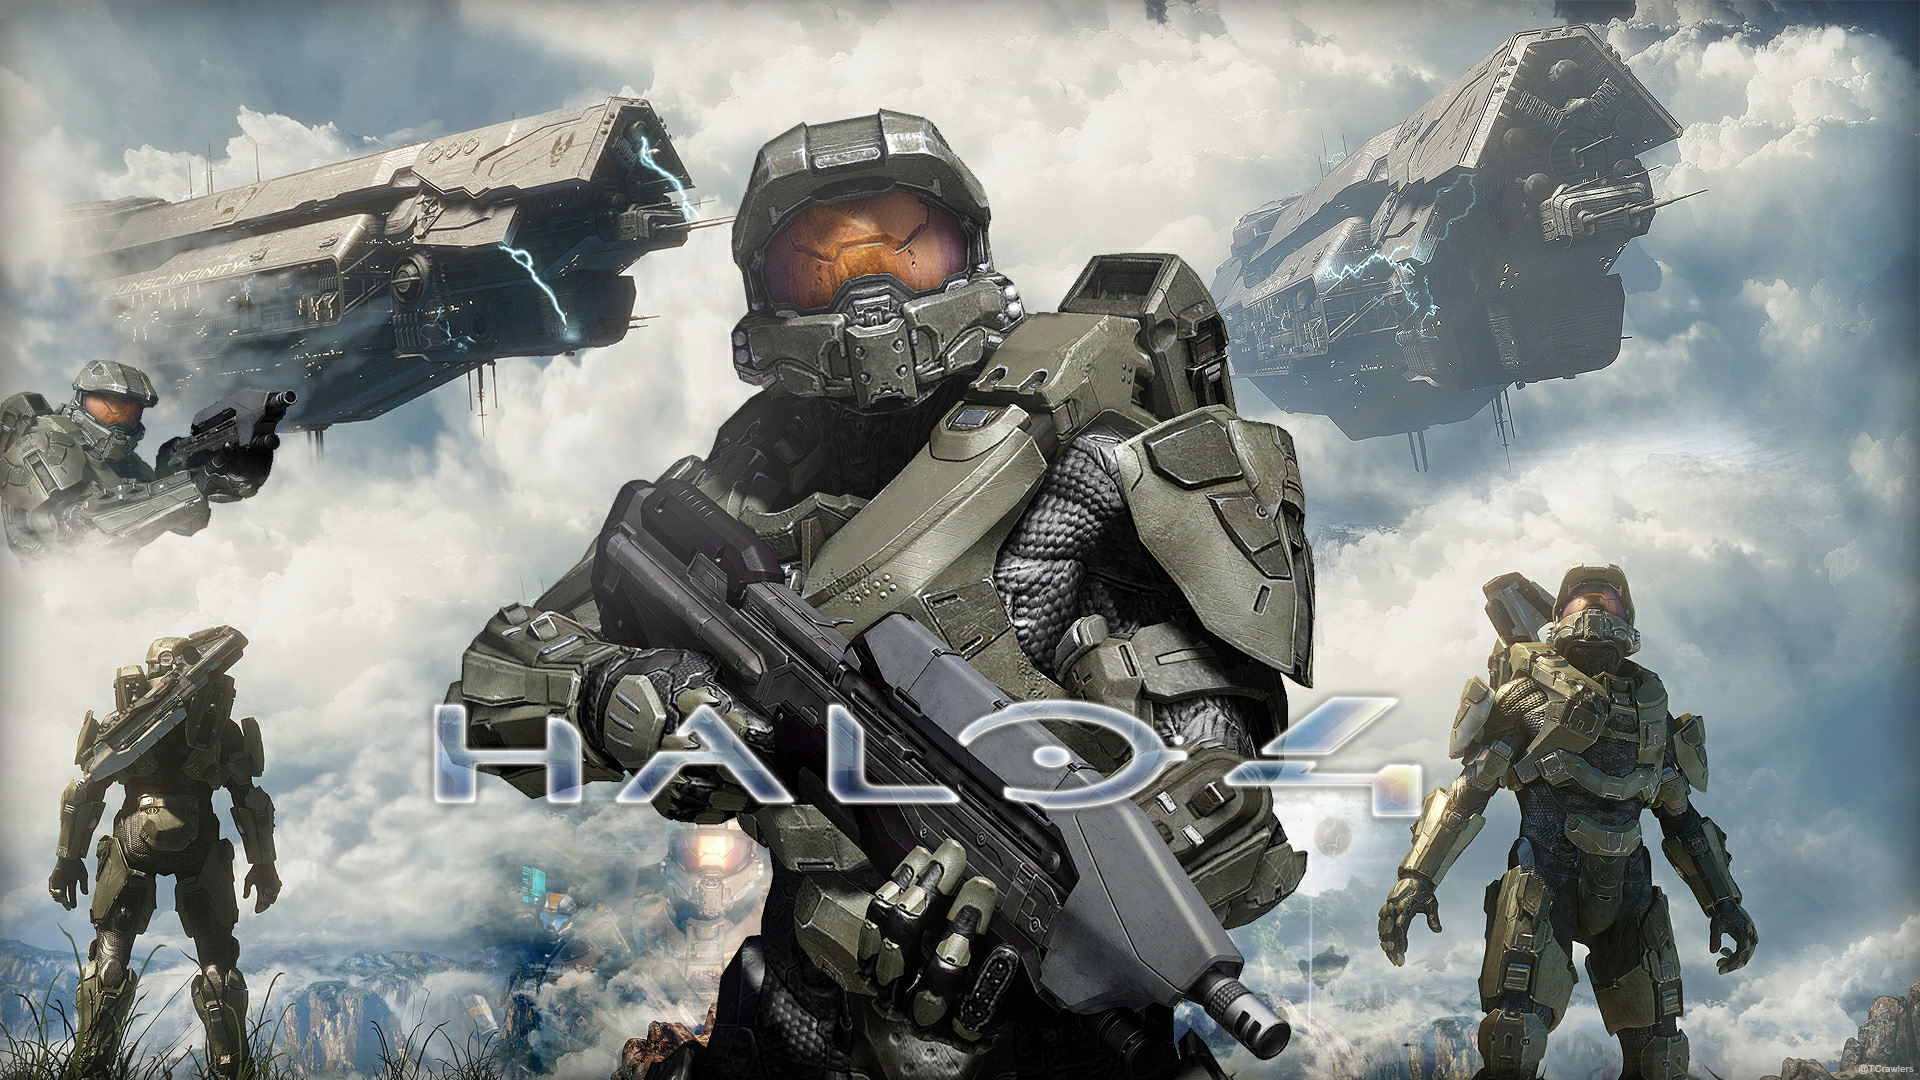 Awesome Halo wallpaper Halo wallpapers 1920x1080